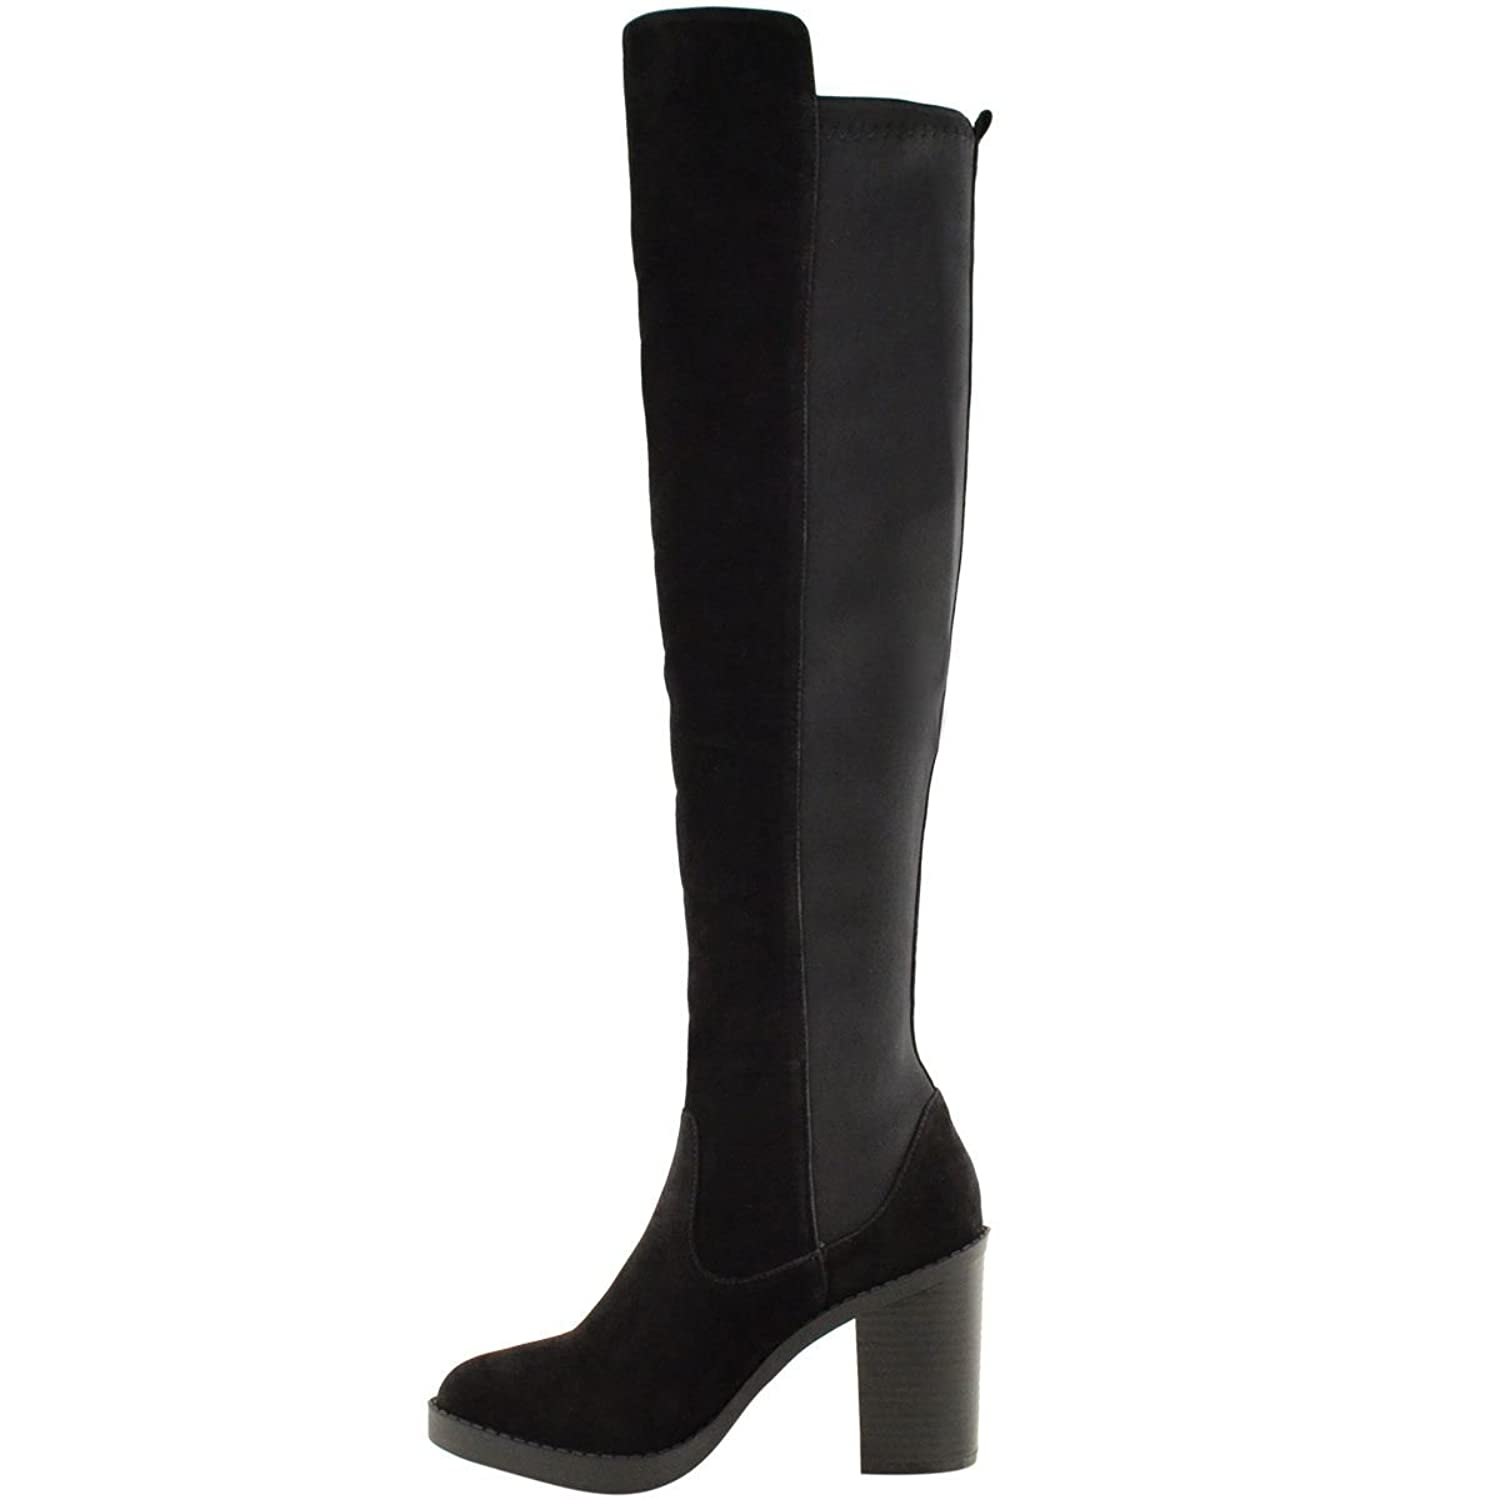 WOMENS LADIES CHUNKY HEEL OVER THE KNEE THIGH HIGH WINTER BOOTS STRETCH  WIDE LEG: Amazon.co.uk: Shoes & Bags